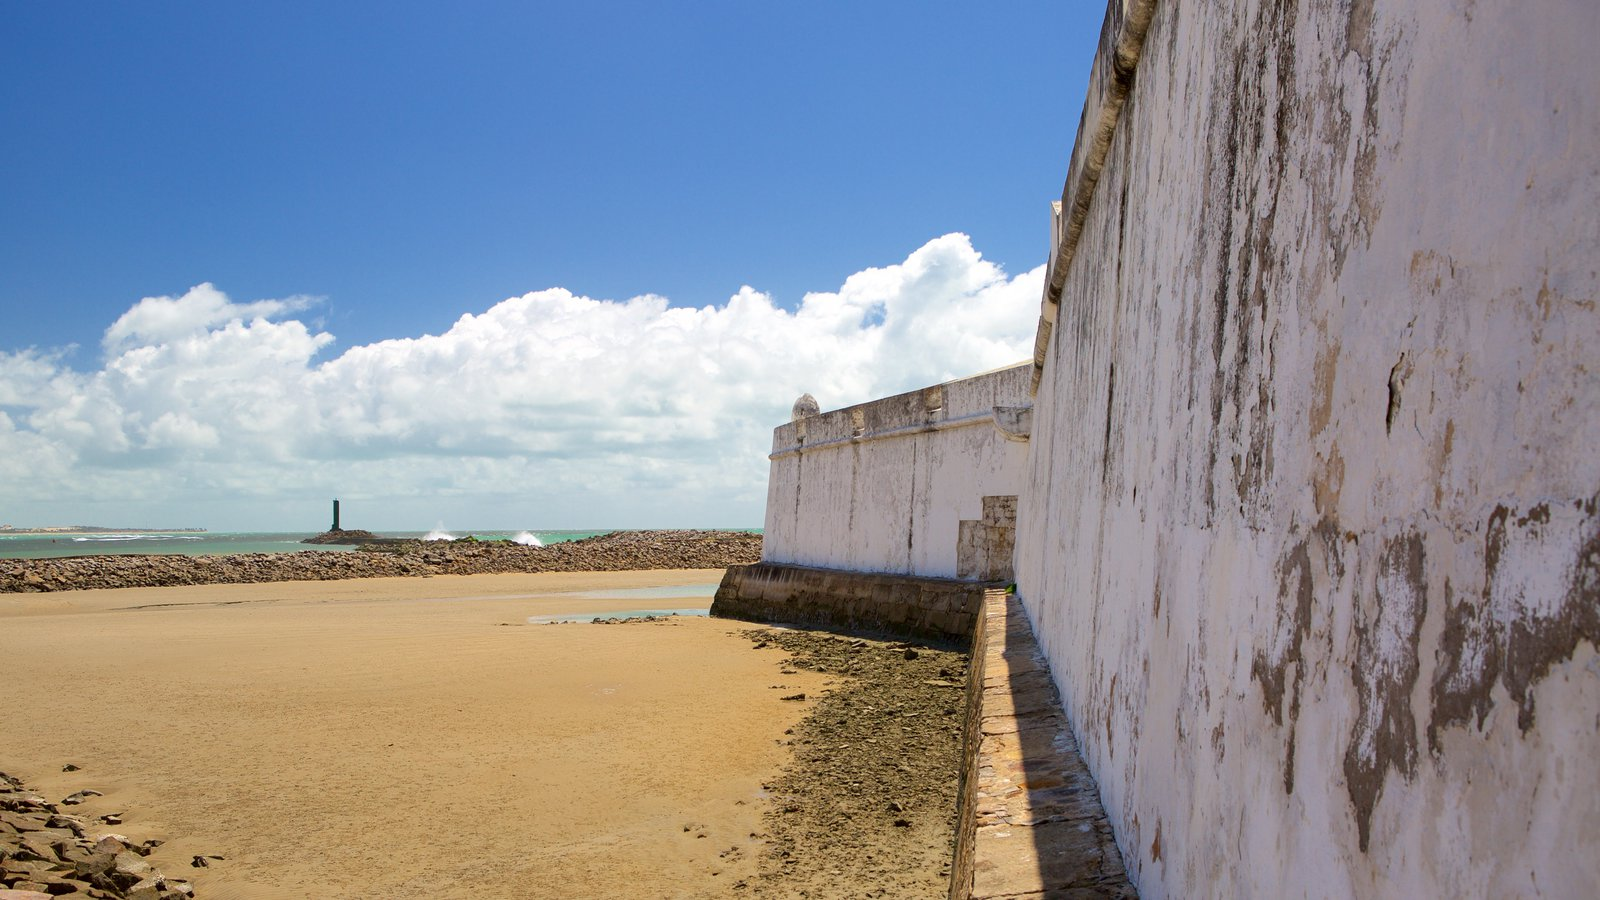 Fort of the Three Kings showing general coastal views, heritage elements and a sandy beach